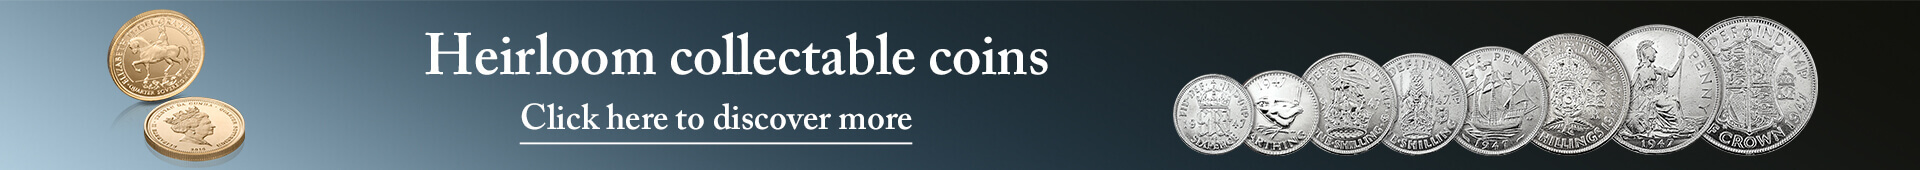 Shop Heirloom Collectable Coins